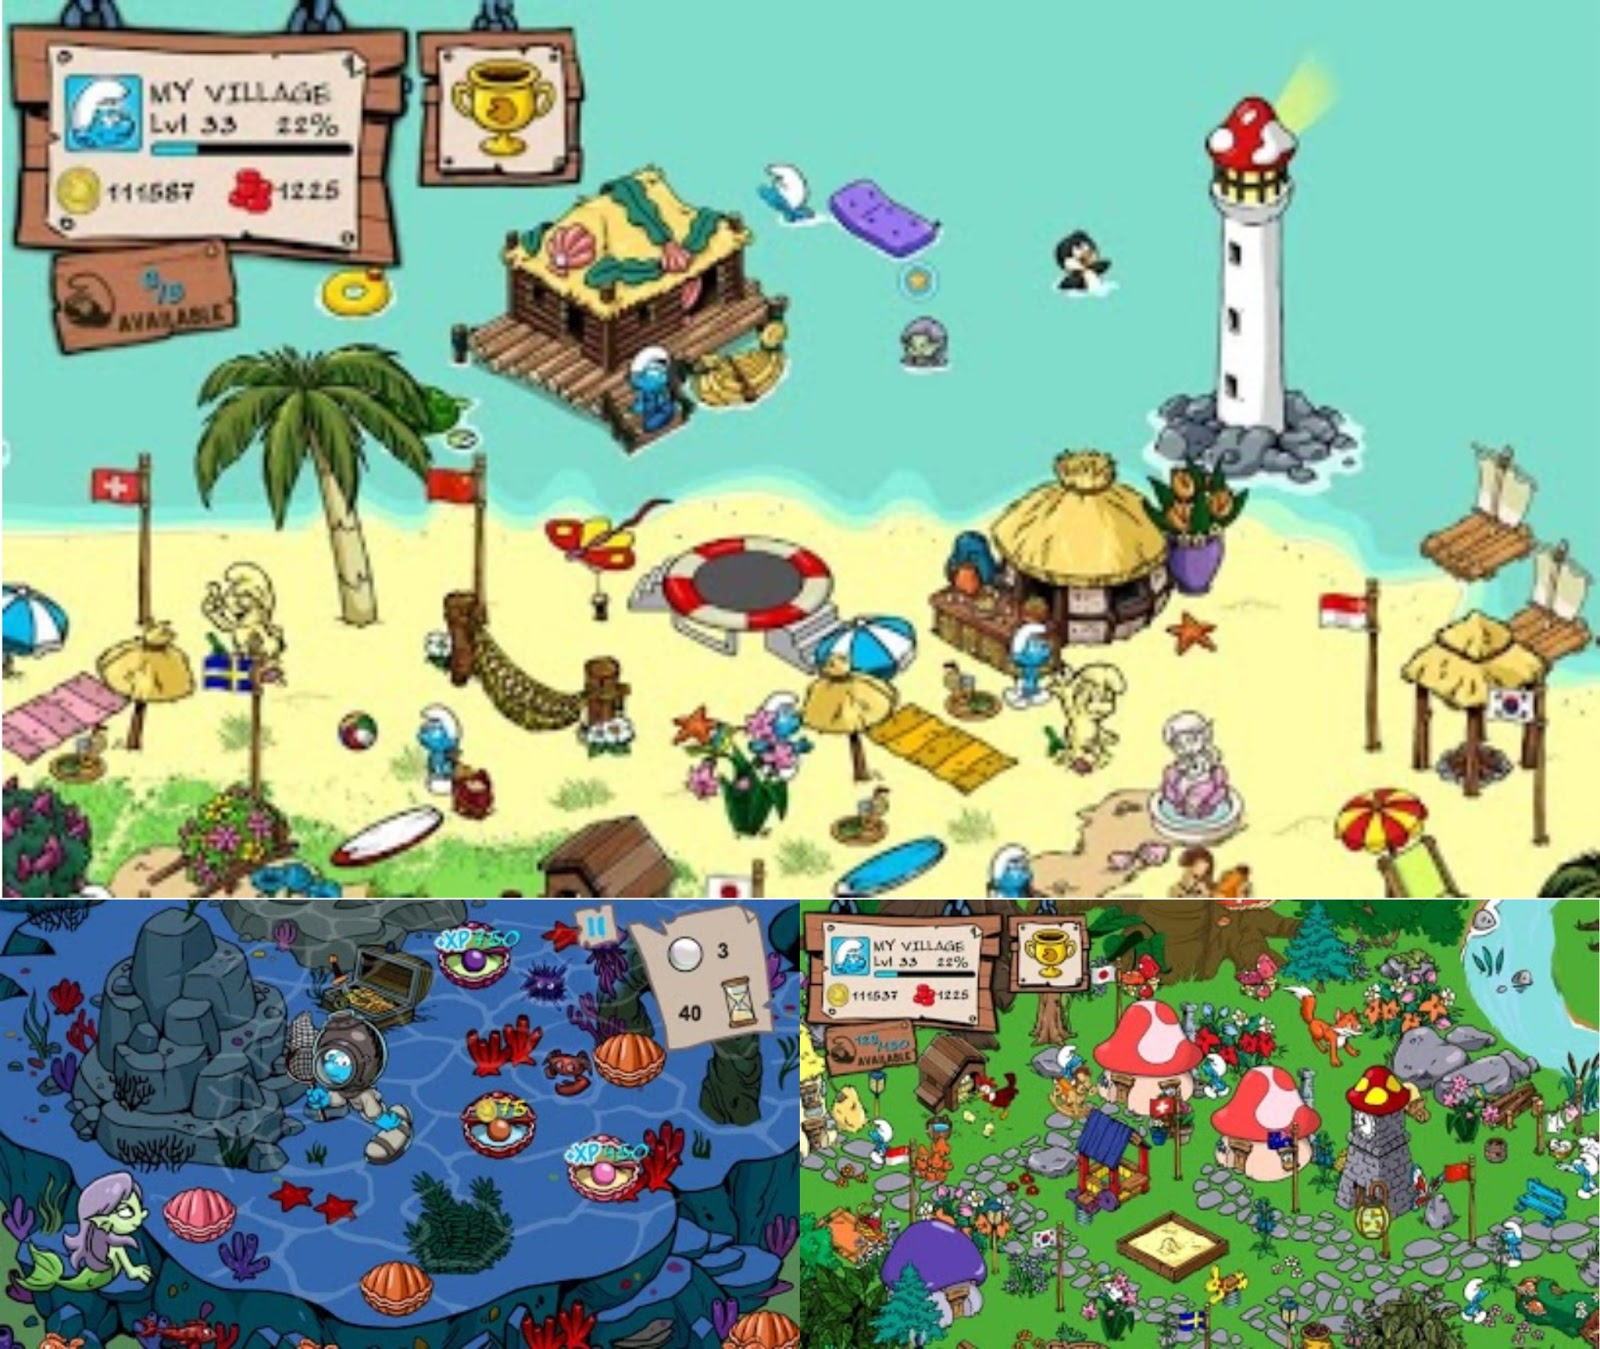 Smurfs' Village v1.1.5a Apk | Android Games Download